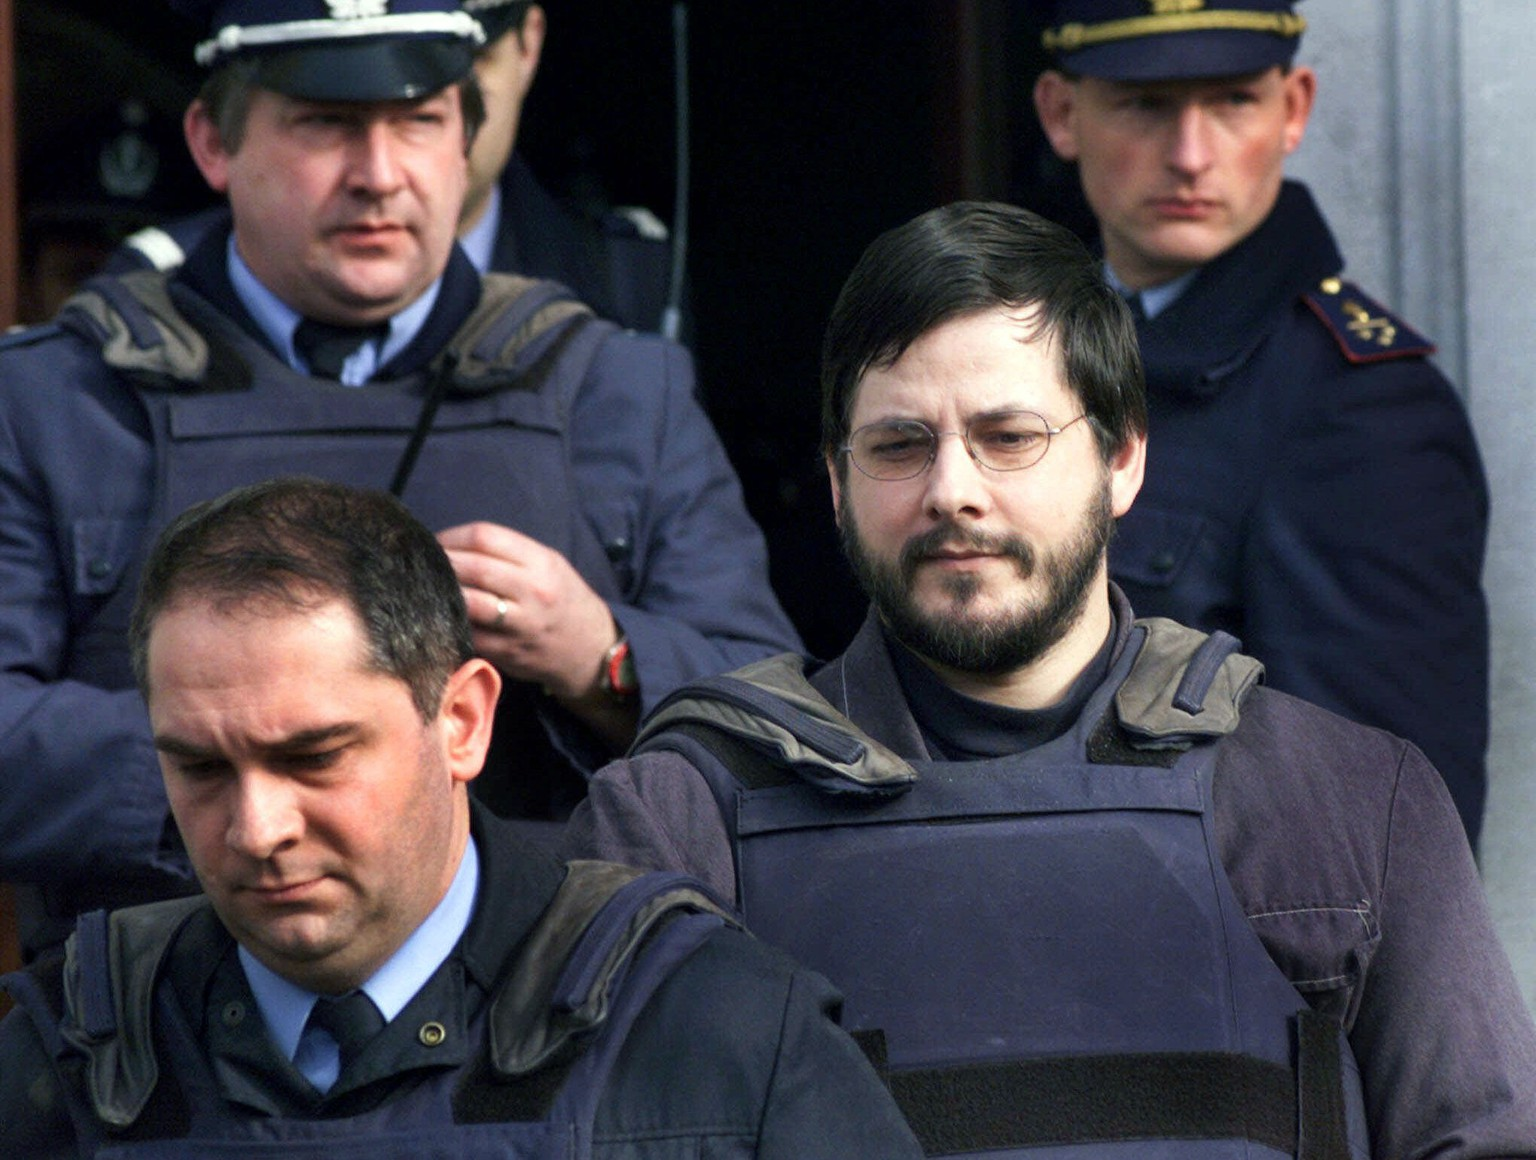 FILE - In this Monday, March 20, 2000 file photo, Marc Dutroux, right, is led out the courthouse of Neufchateau, Belgium, 180 kilometers (130 miles) east of Brussels. Marc Dutroux, a pedophile and child-killer who became one of Belgium's most notorious criminals, is asking a sentencing court on Monday, Feb. 4, 2013 to release him from prison and monitor him with an electronic ankle bracelet. Dutroux, who is now 56, is serving a life term for kidnapping, torturing and abusing six girls in 1995 and 1996, and murdering four of them. He has been in prison for 16 years. His former wife, Michelle Martin, 53, who let two girls starve to death in the cellar while her husband was in jail for theft was approved for early release in July. She now lives in a convent. The court is not expected to rule on Dutroux's request for freedom until Feb 18. Prison officials and prosecutors have recommended against his release. (AP Photo/Yves Logghe, File)